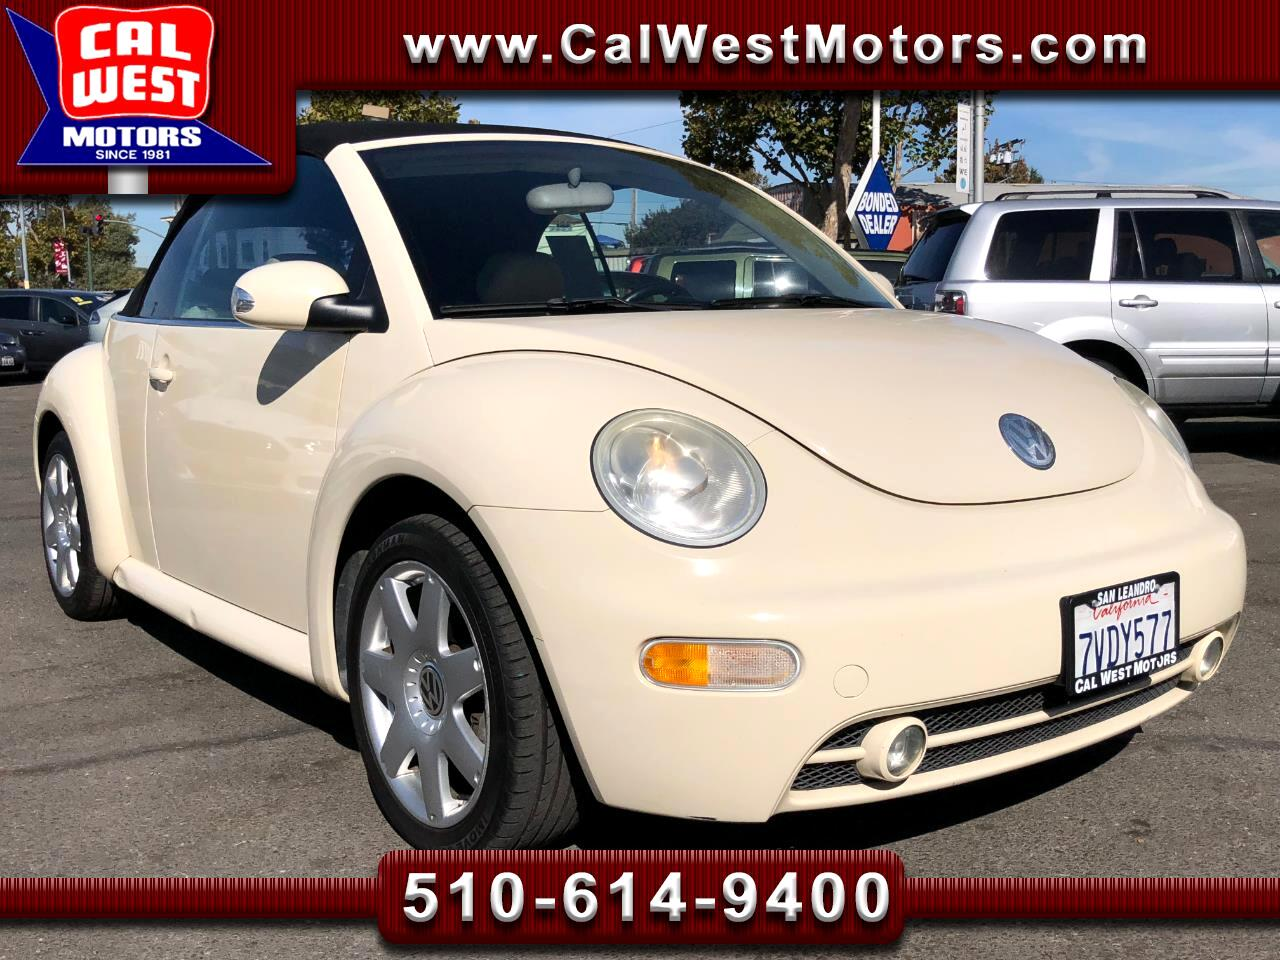 2003 Volkswagen New Beetle GLS Convertible Leather MPG+ VeryClean GreatMtnce